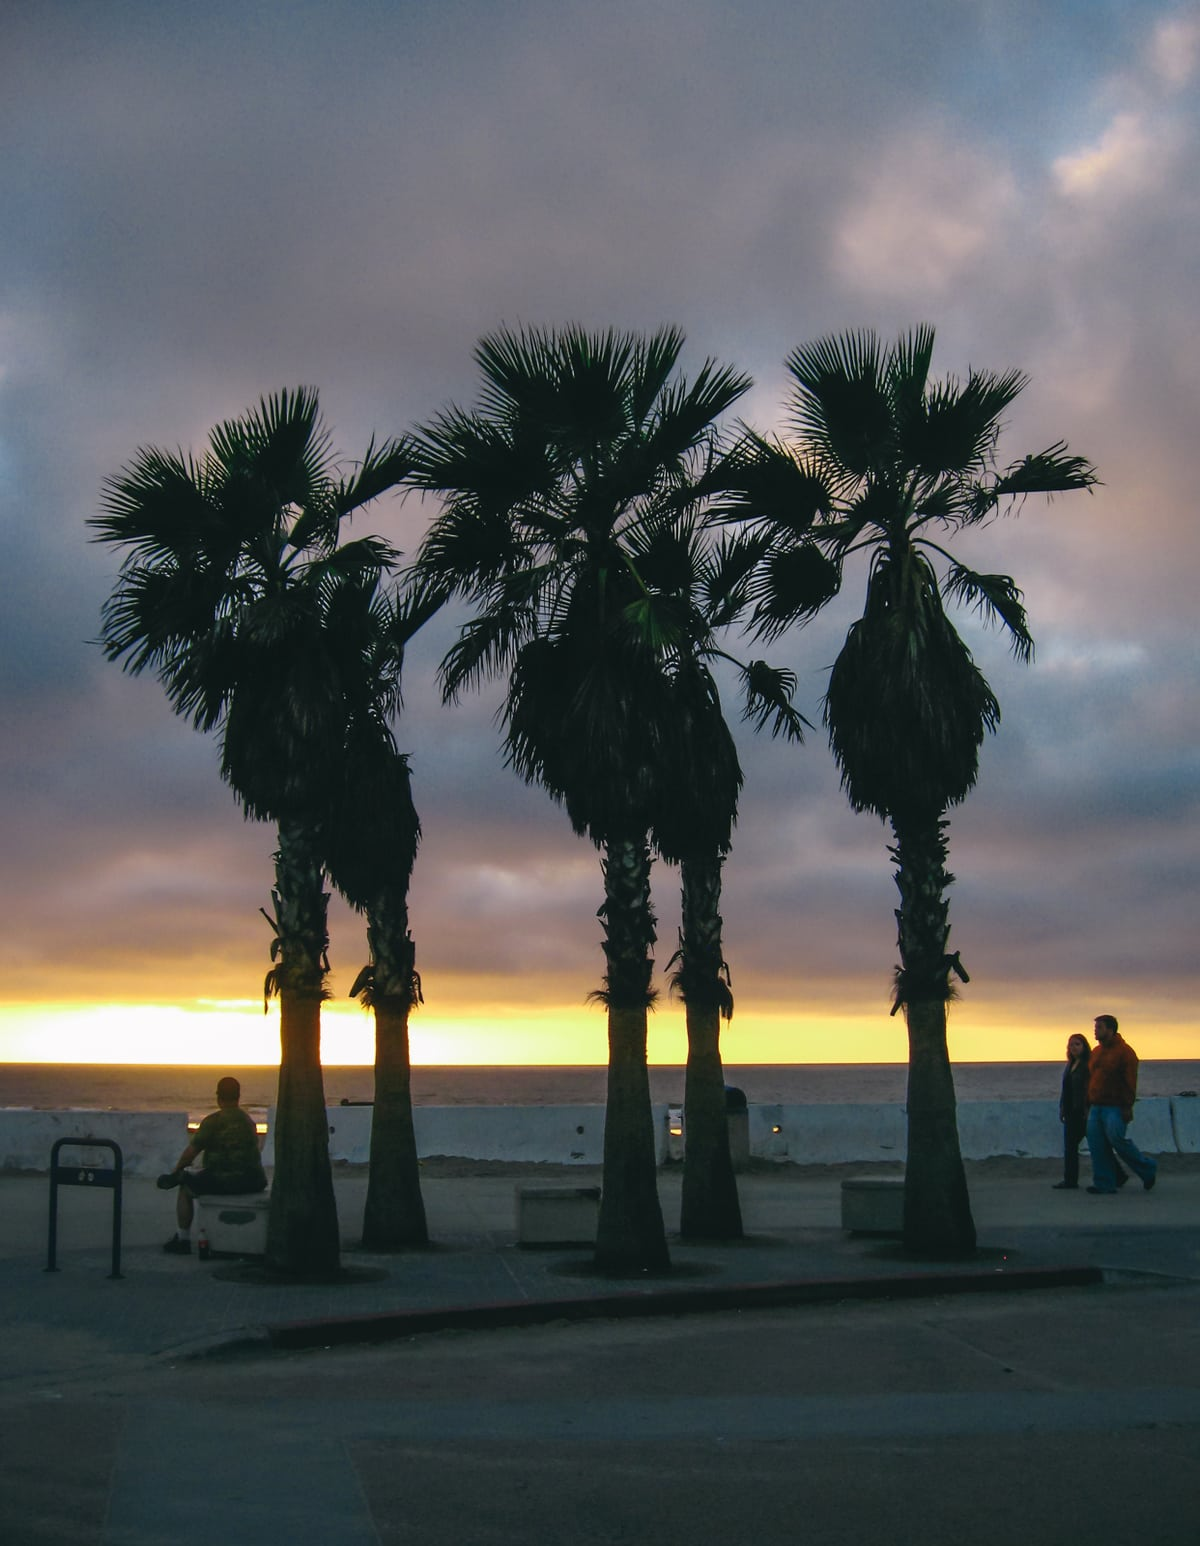 Palm trees and people at Sunset